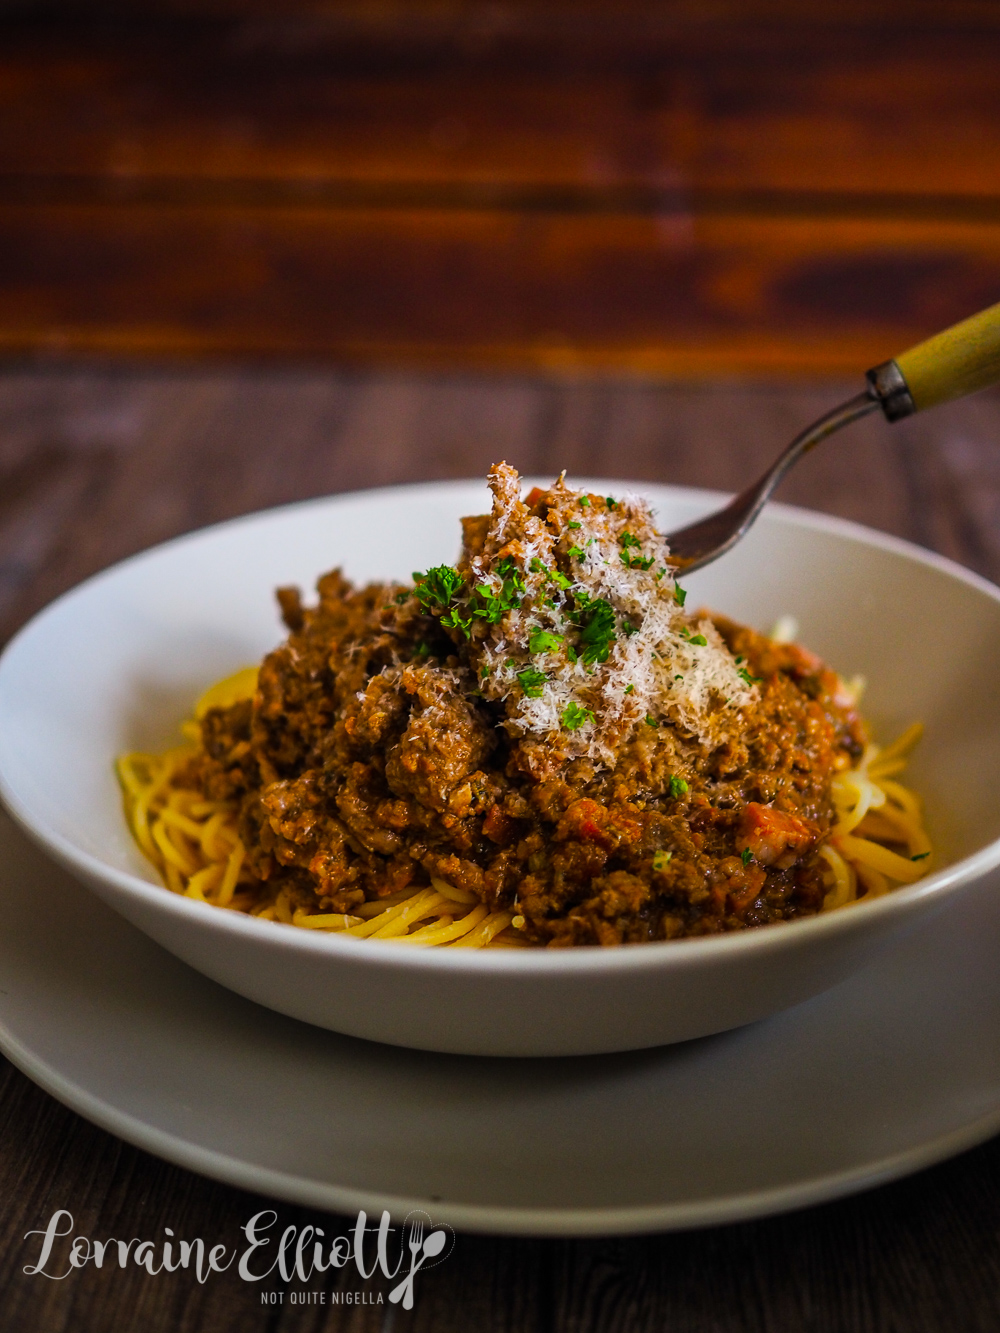 Thermomix Bolognese Sauce